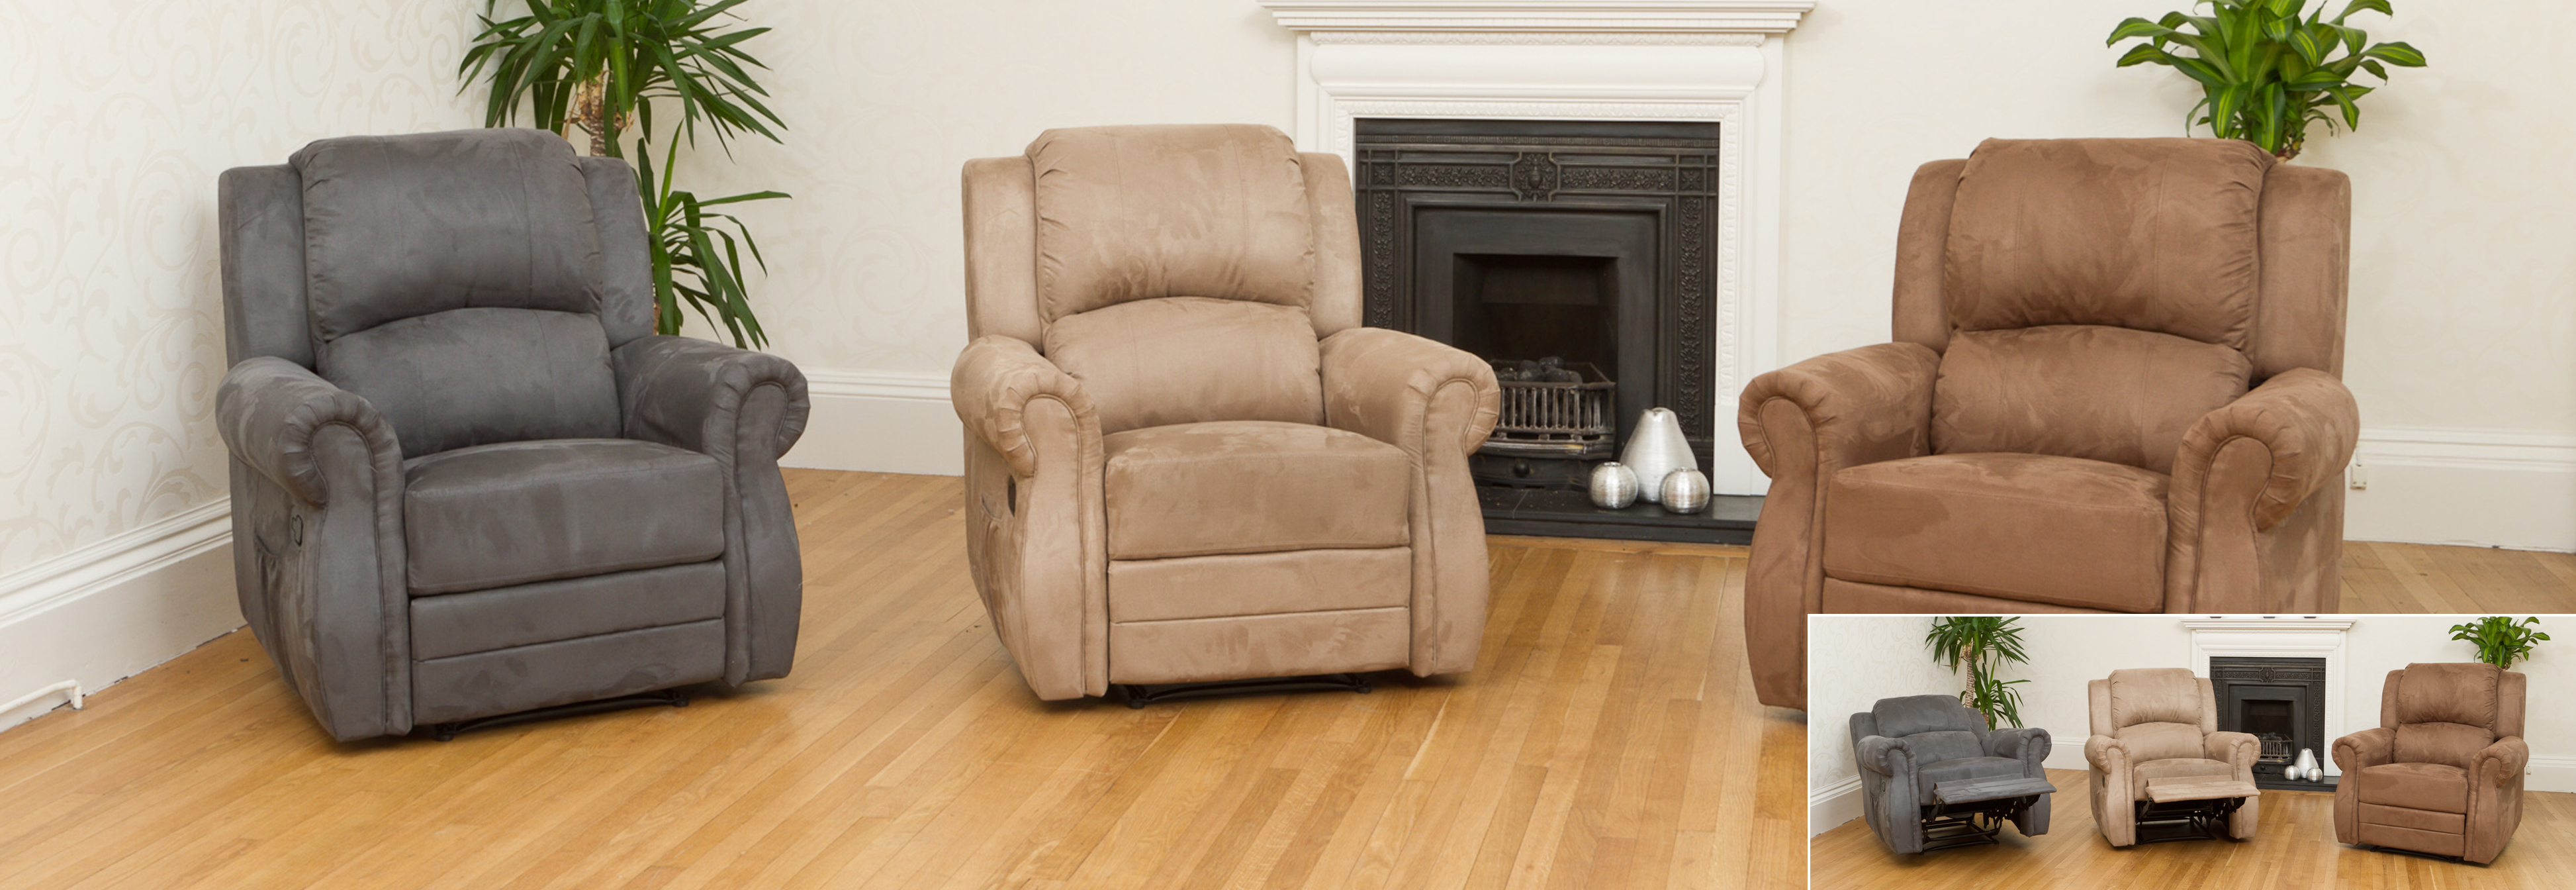 Ormonde Recliner light brown